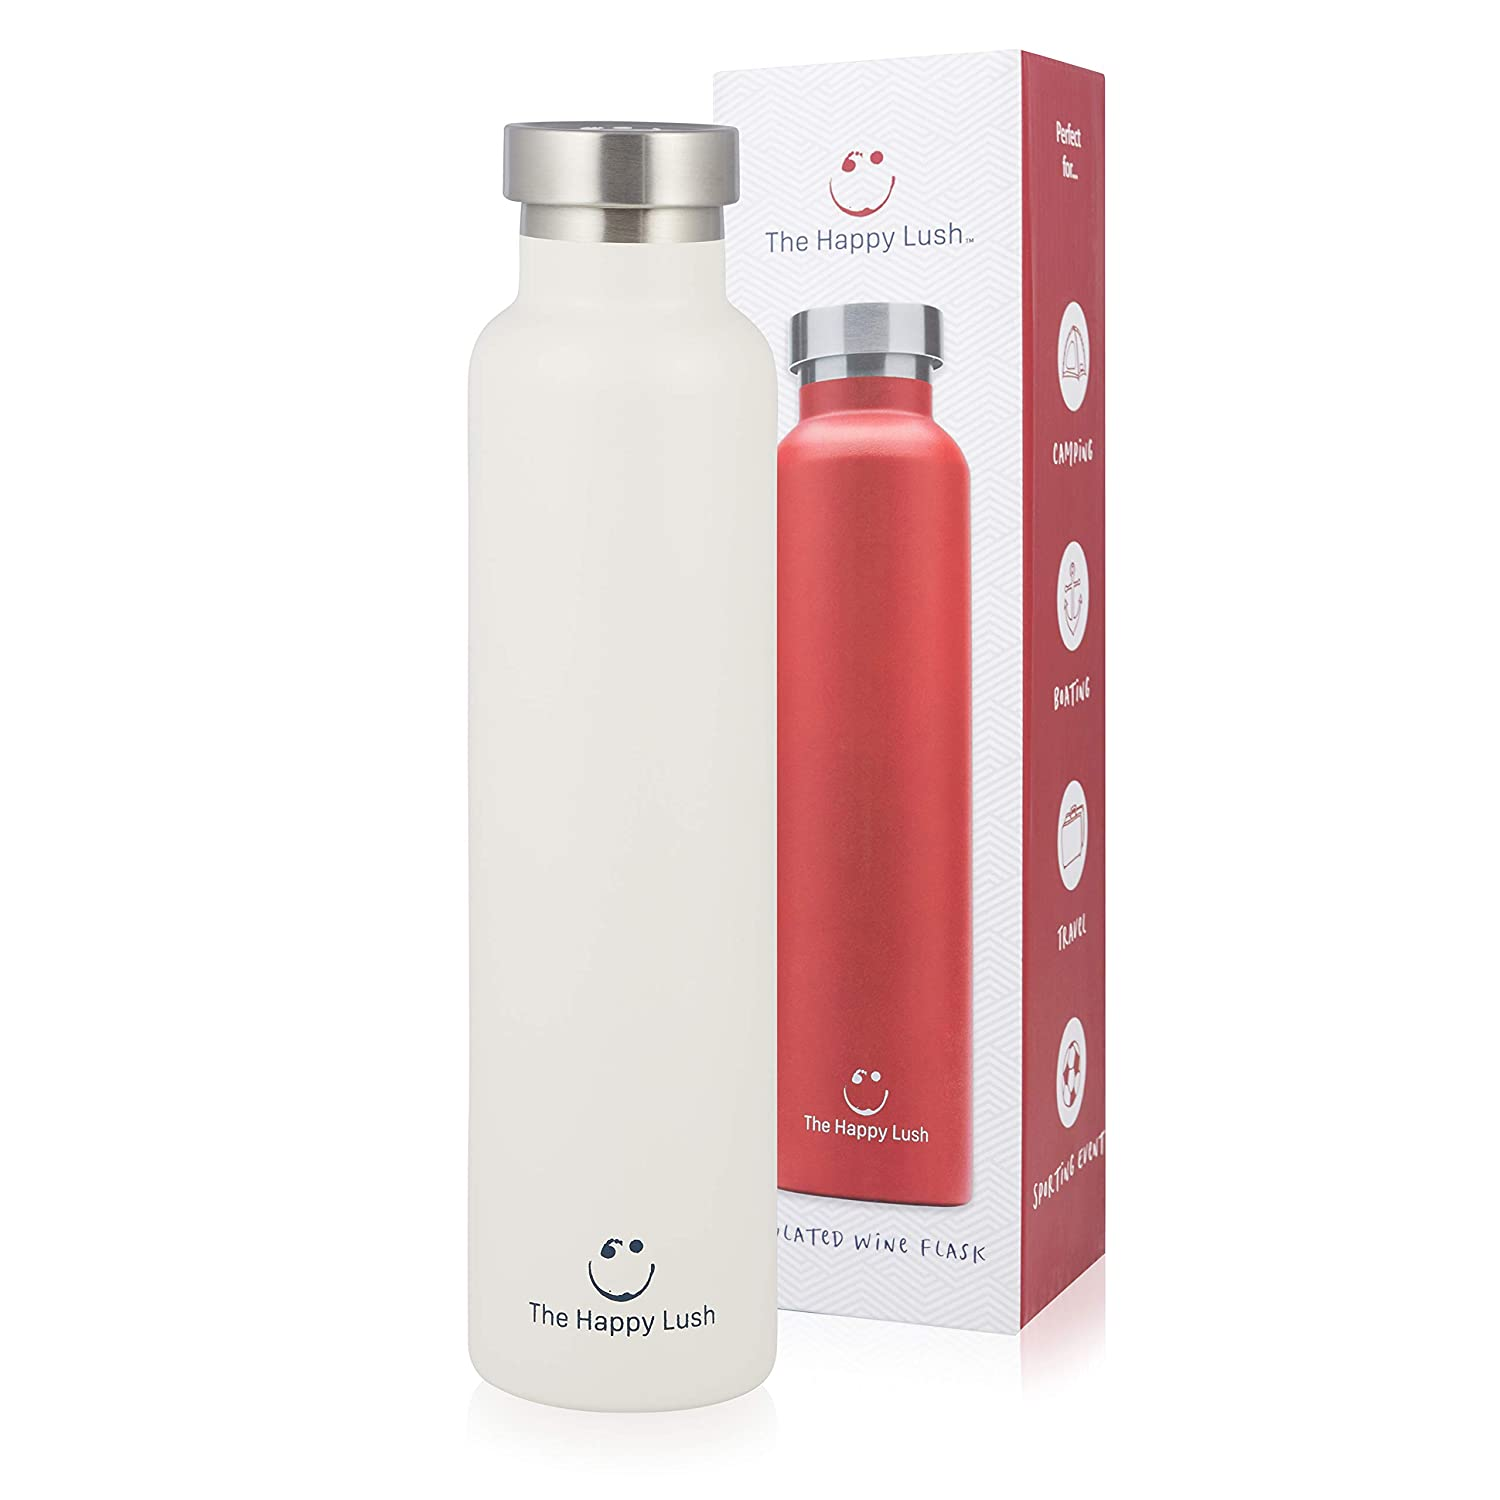 The Happy Lush White 750 ml Insulated Wine Flask with Lid – Stainless Steel, Double Walled Vacuum Insulated Travel Bottle & Wine Growler for Hot and Cold Beverages